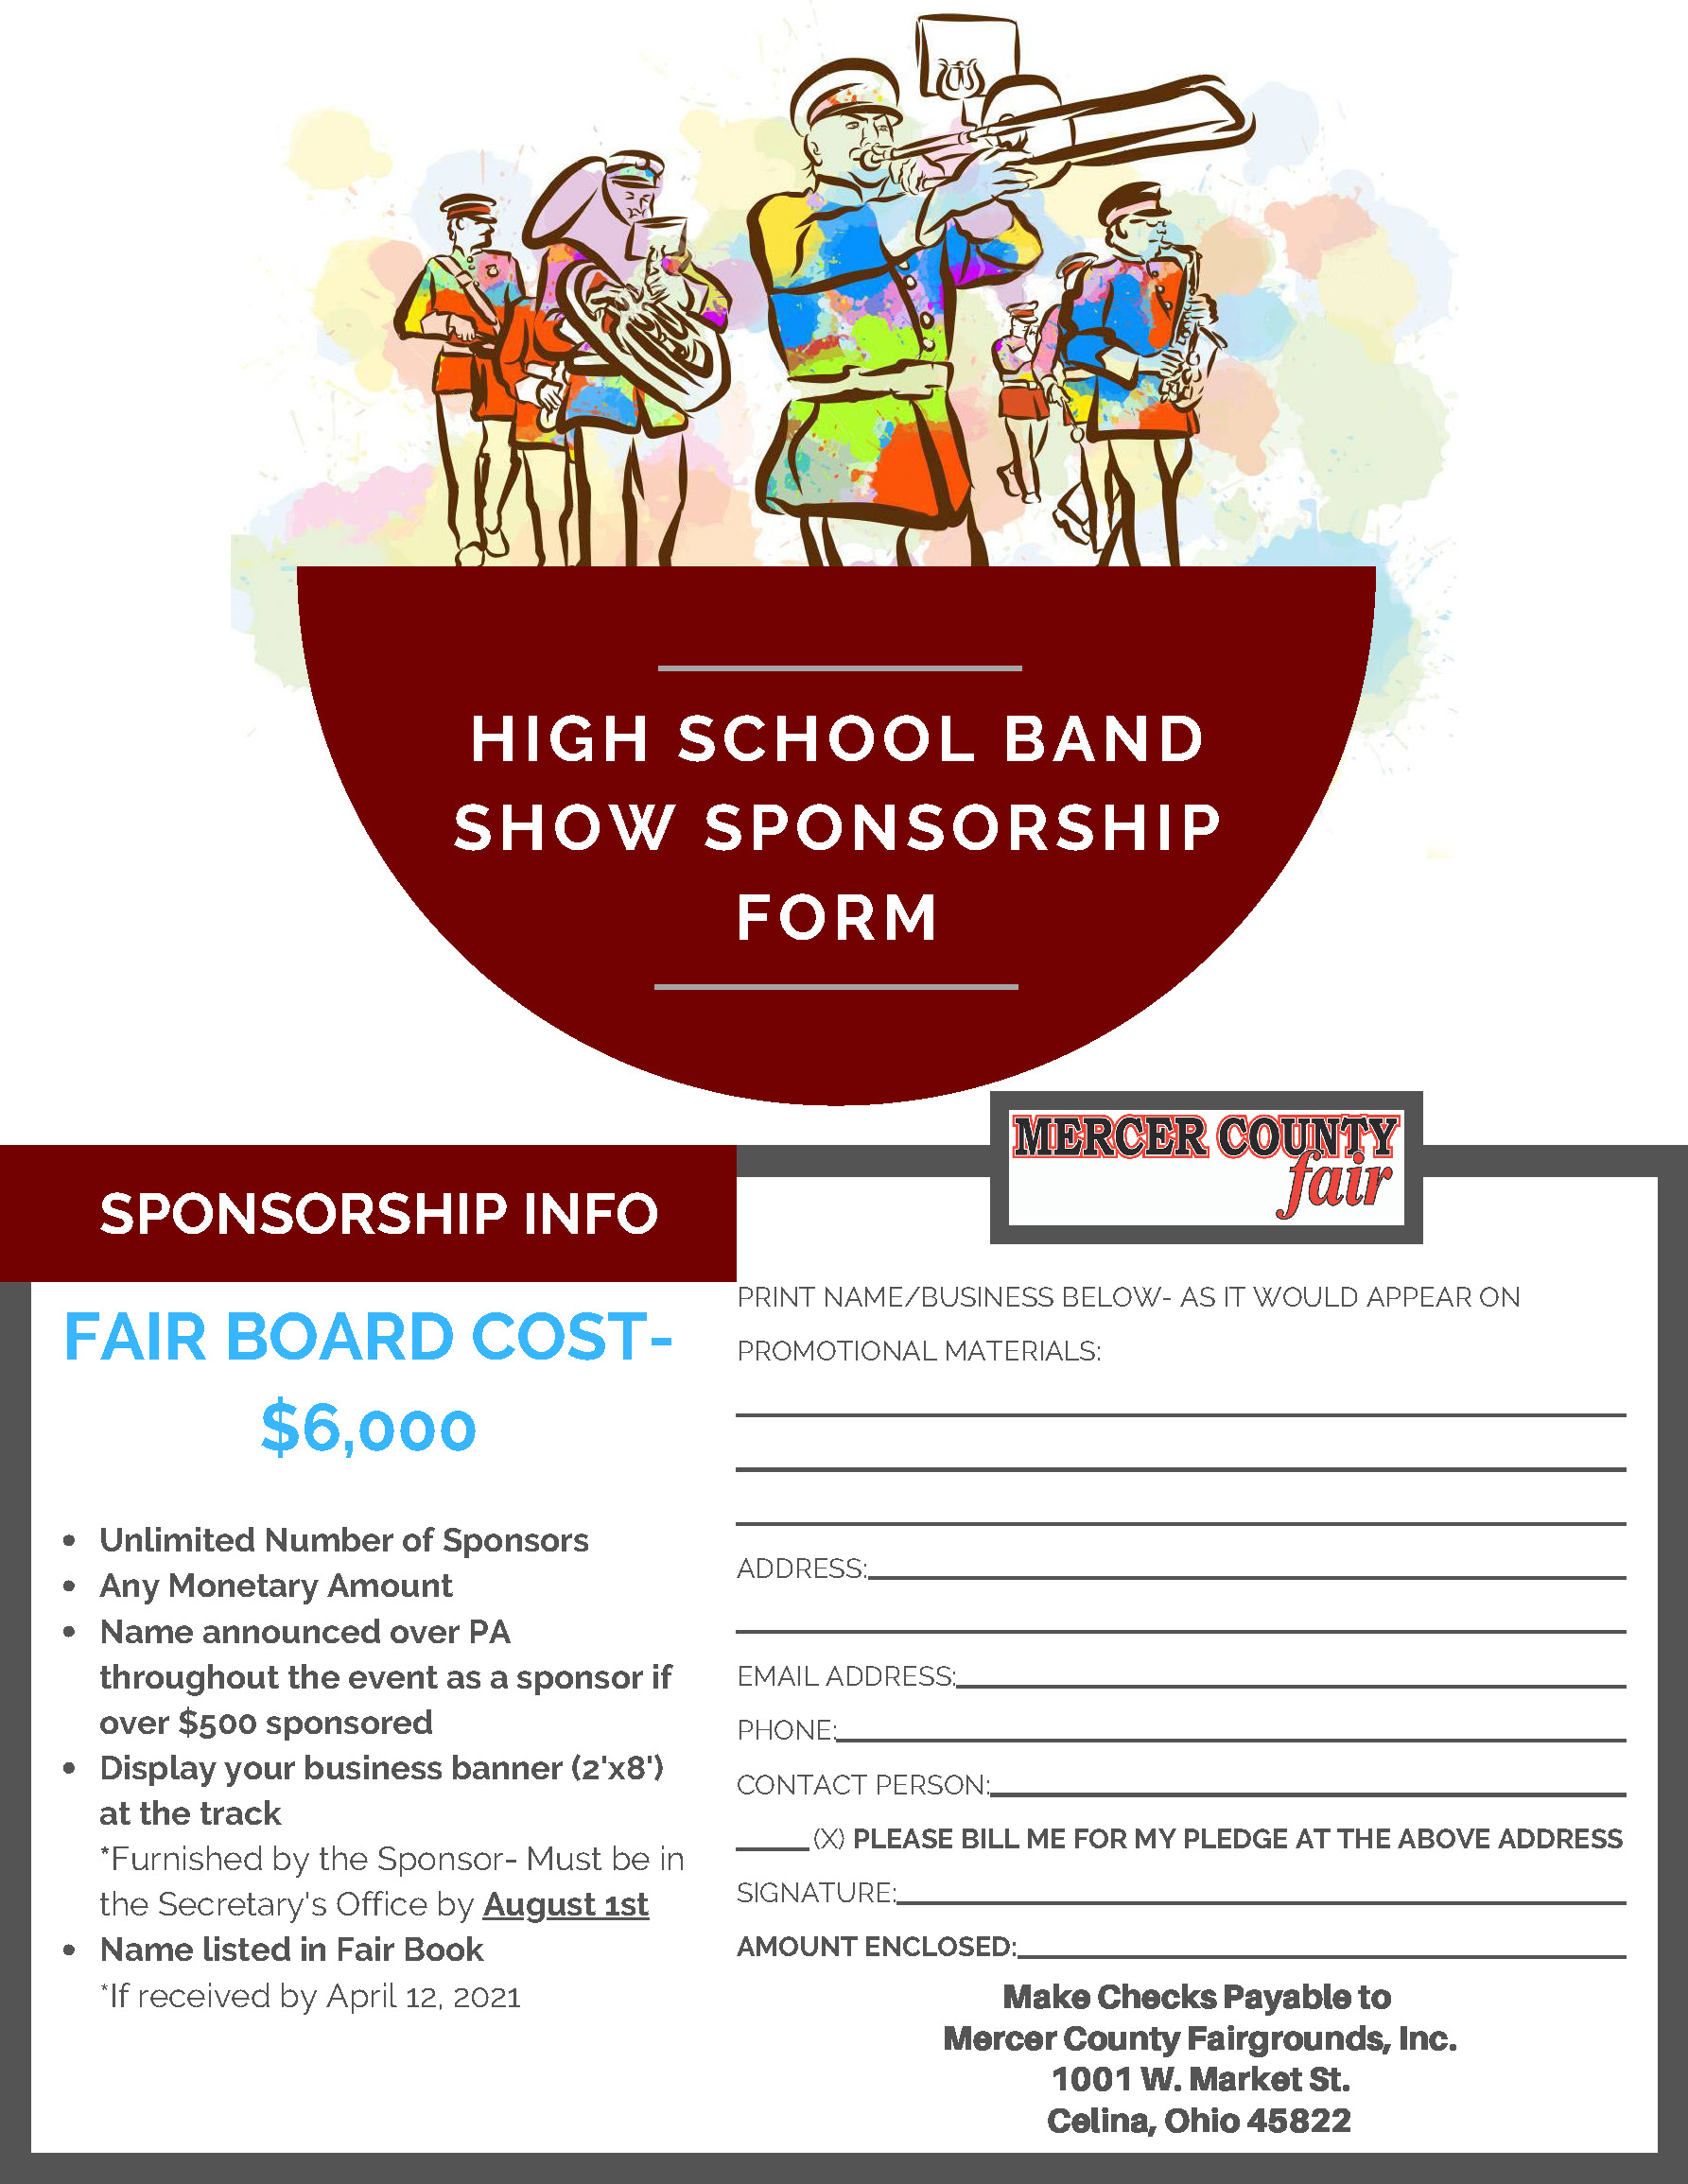 High School Band Show Sponsorship Form